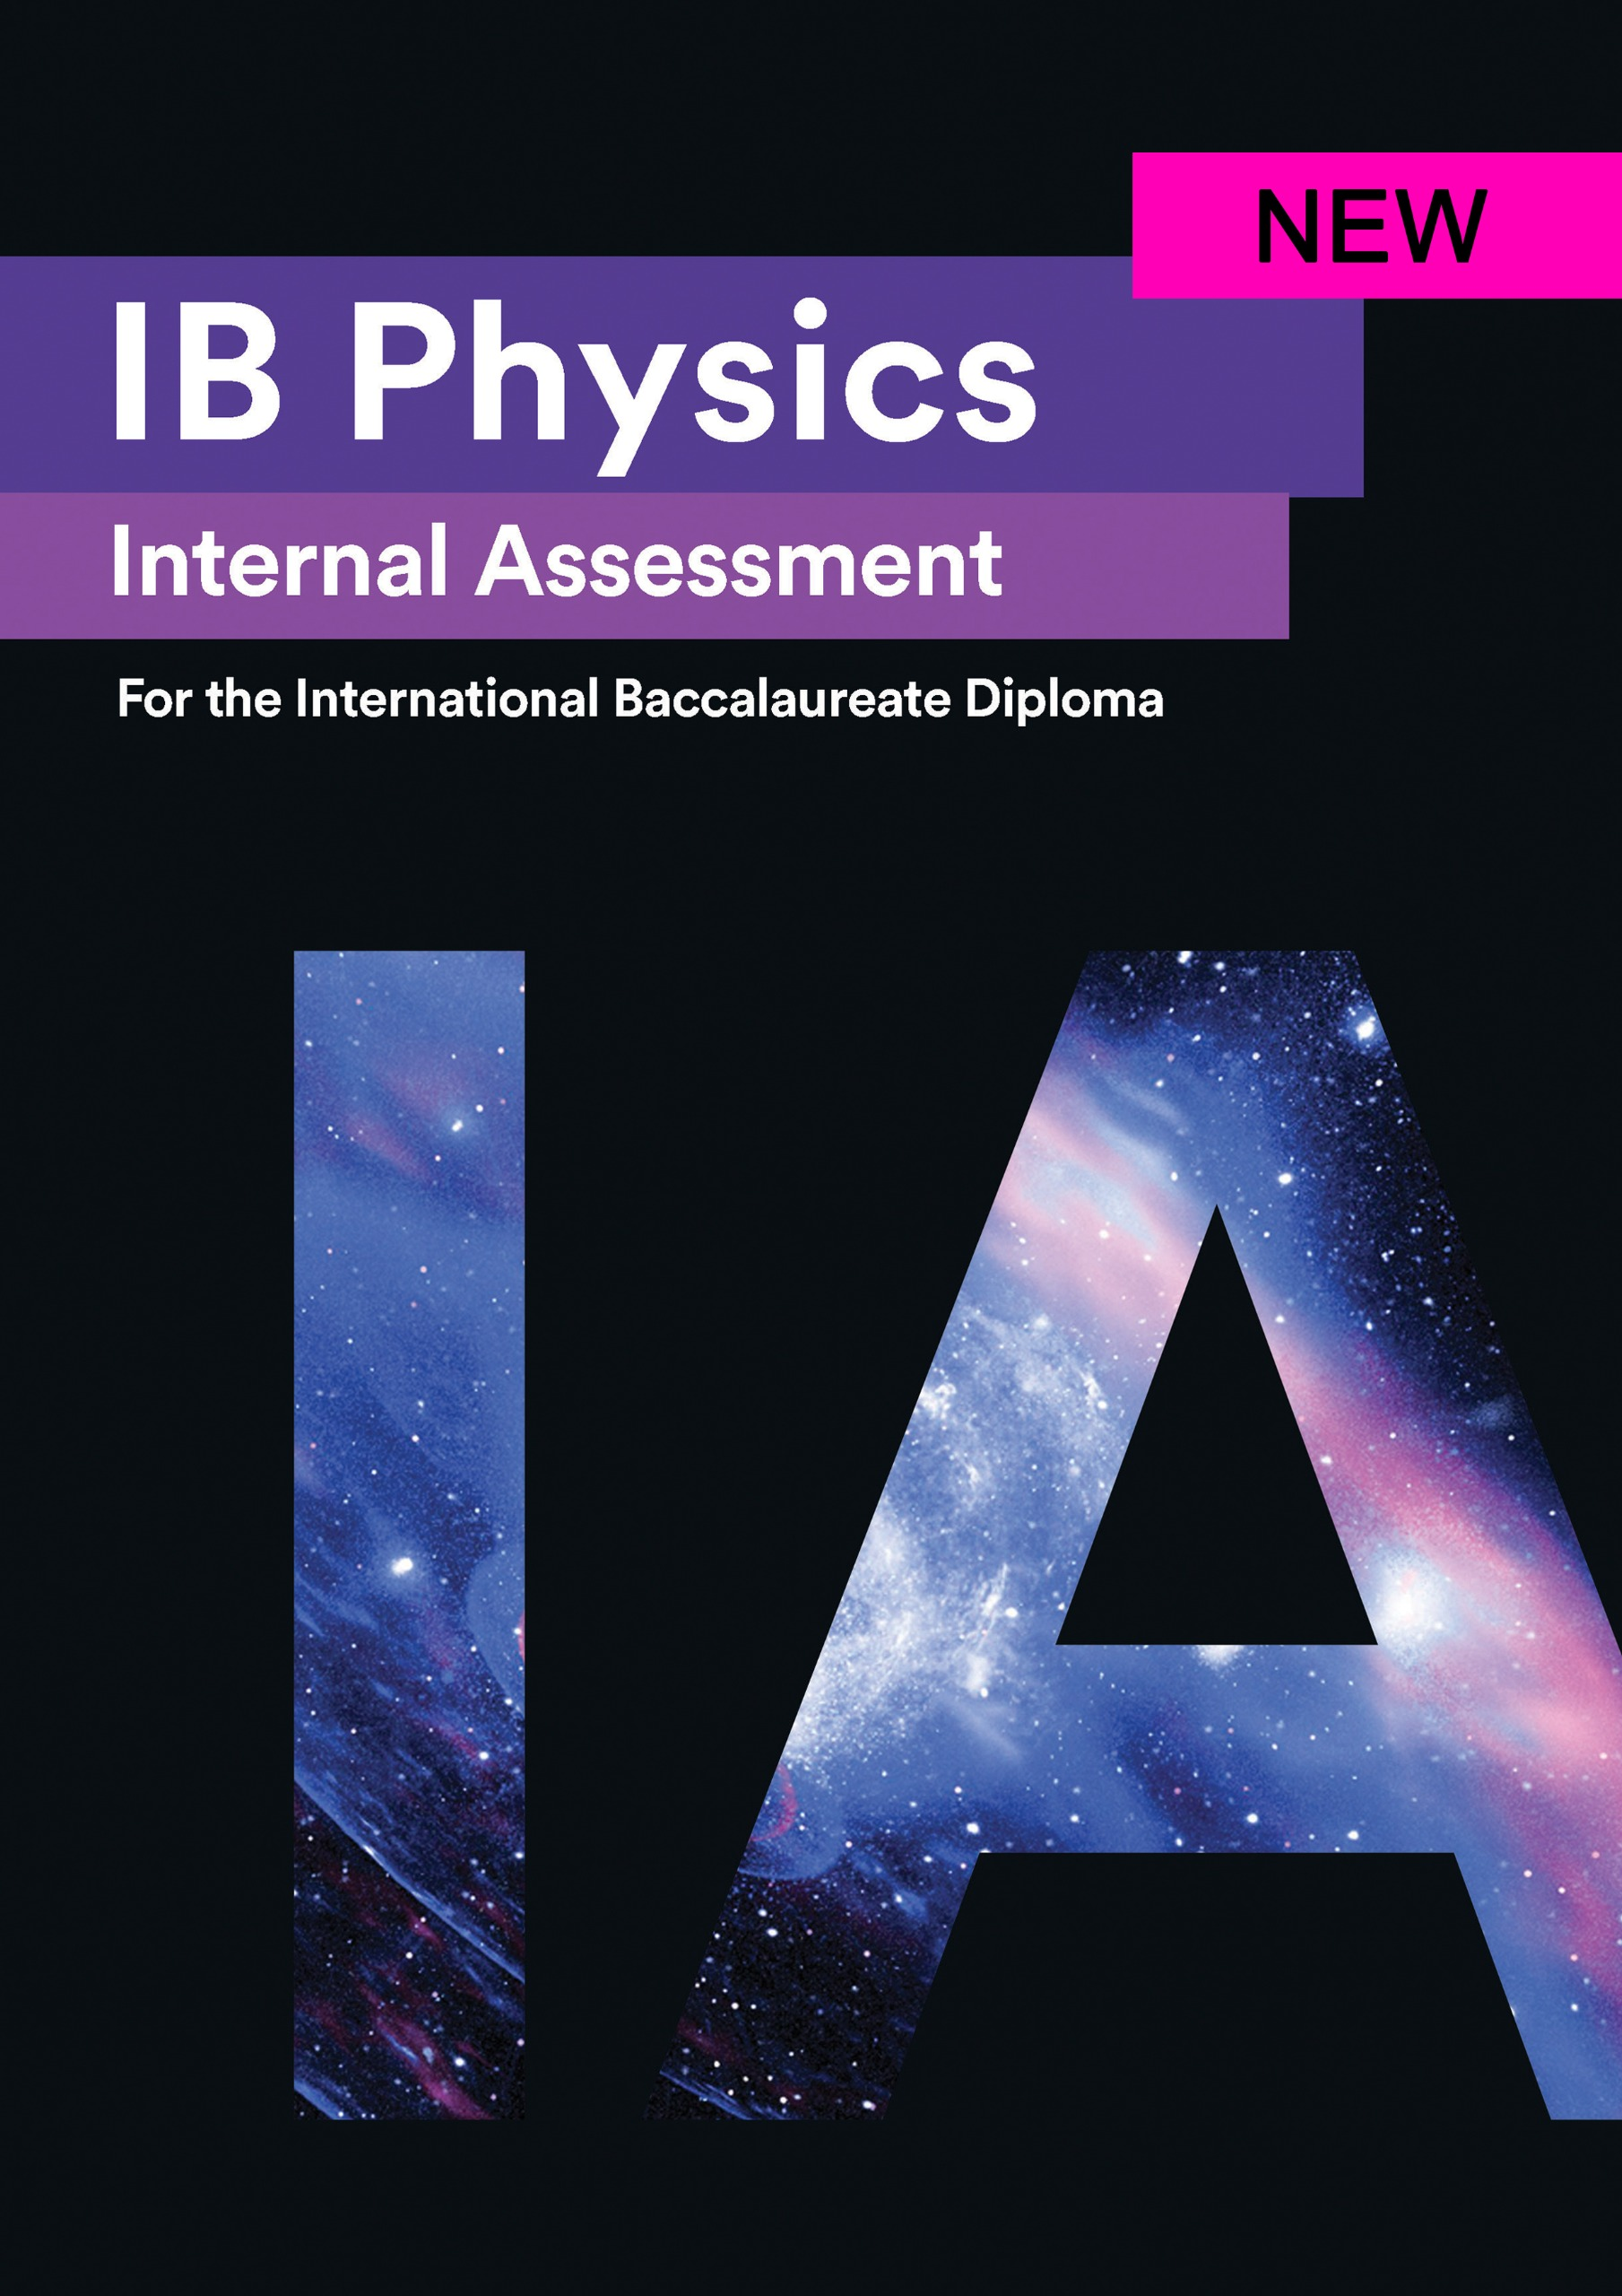 IB Physics Internal Assessment [IA]: Seven Excellent IAs for the International Baccalaureate [IB]